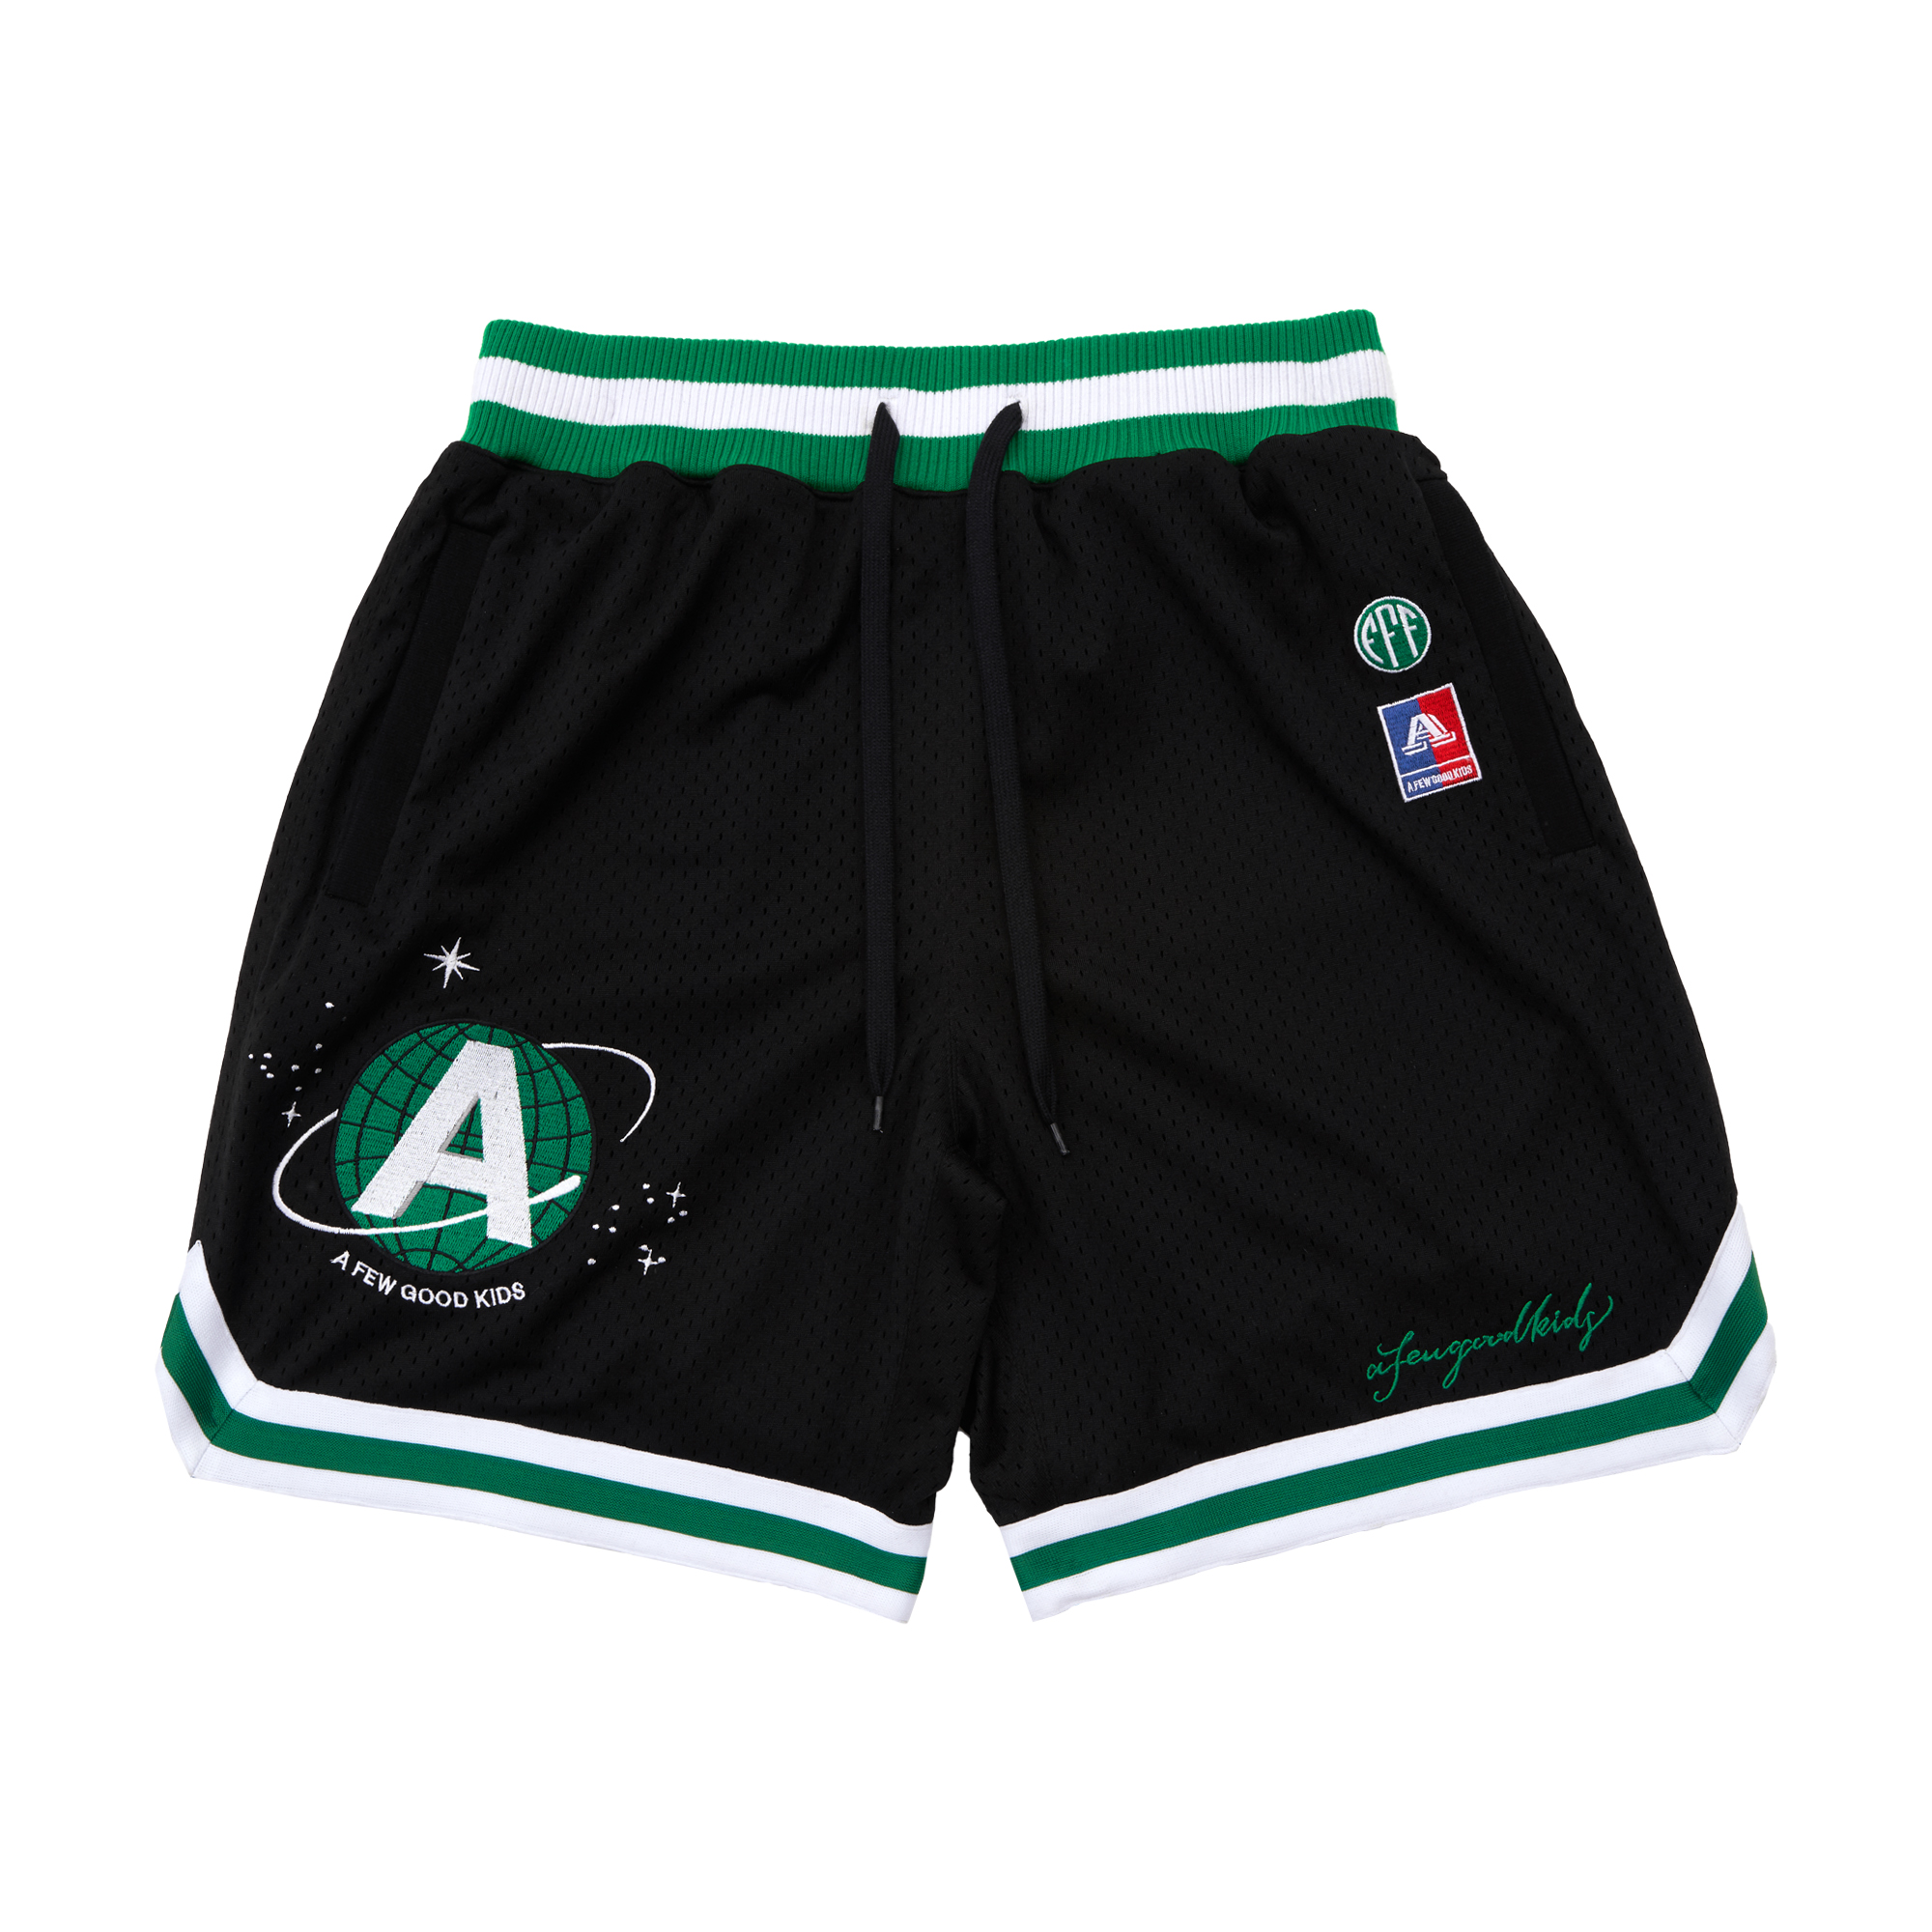 A Few Good Kids Athletic Basketball Streetwear Hip Hop Shorts